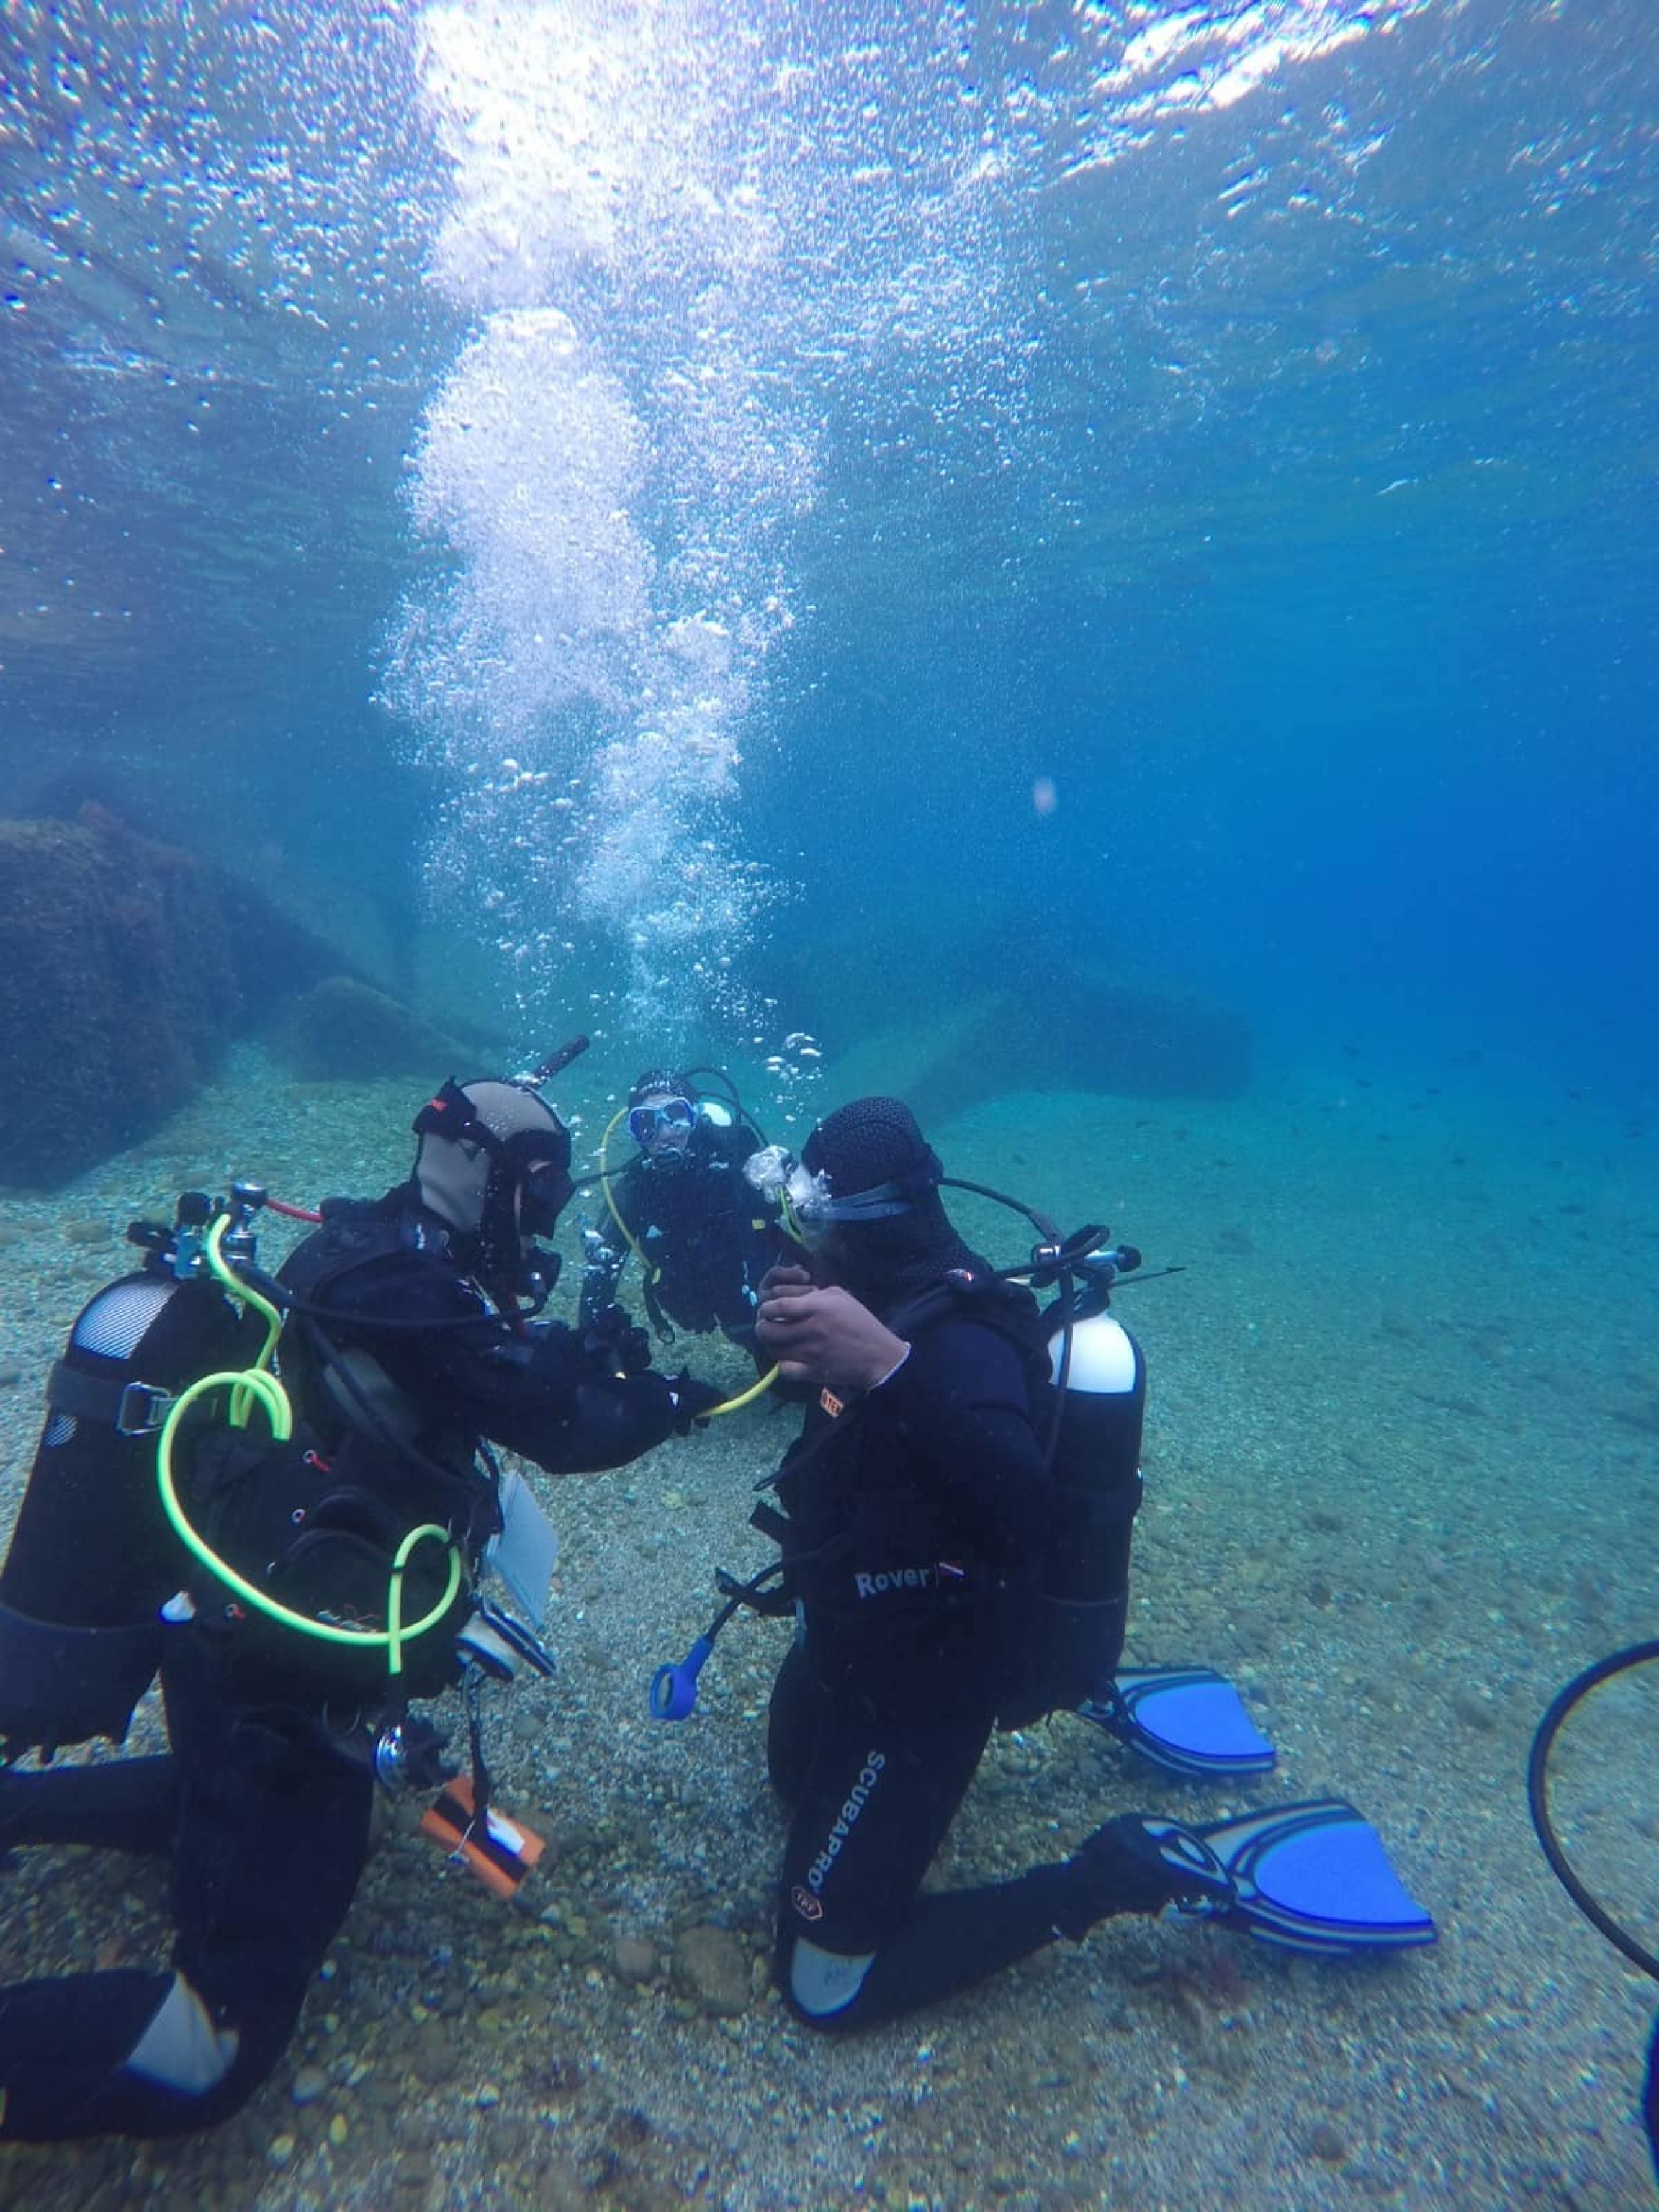 two people underwater in scuba gear.